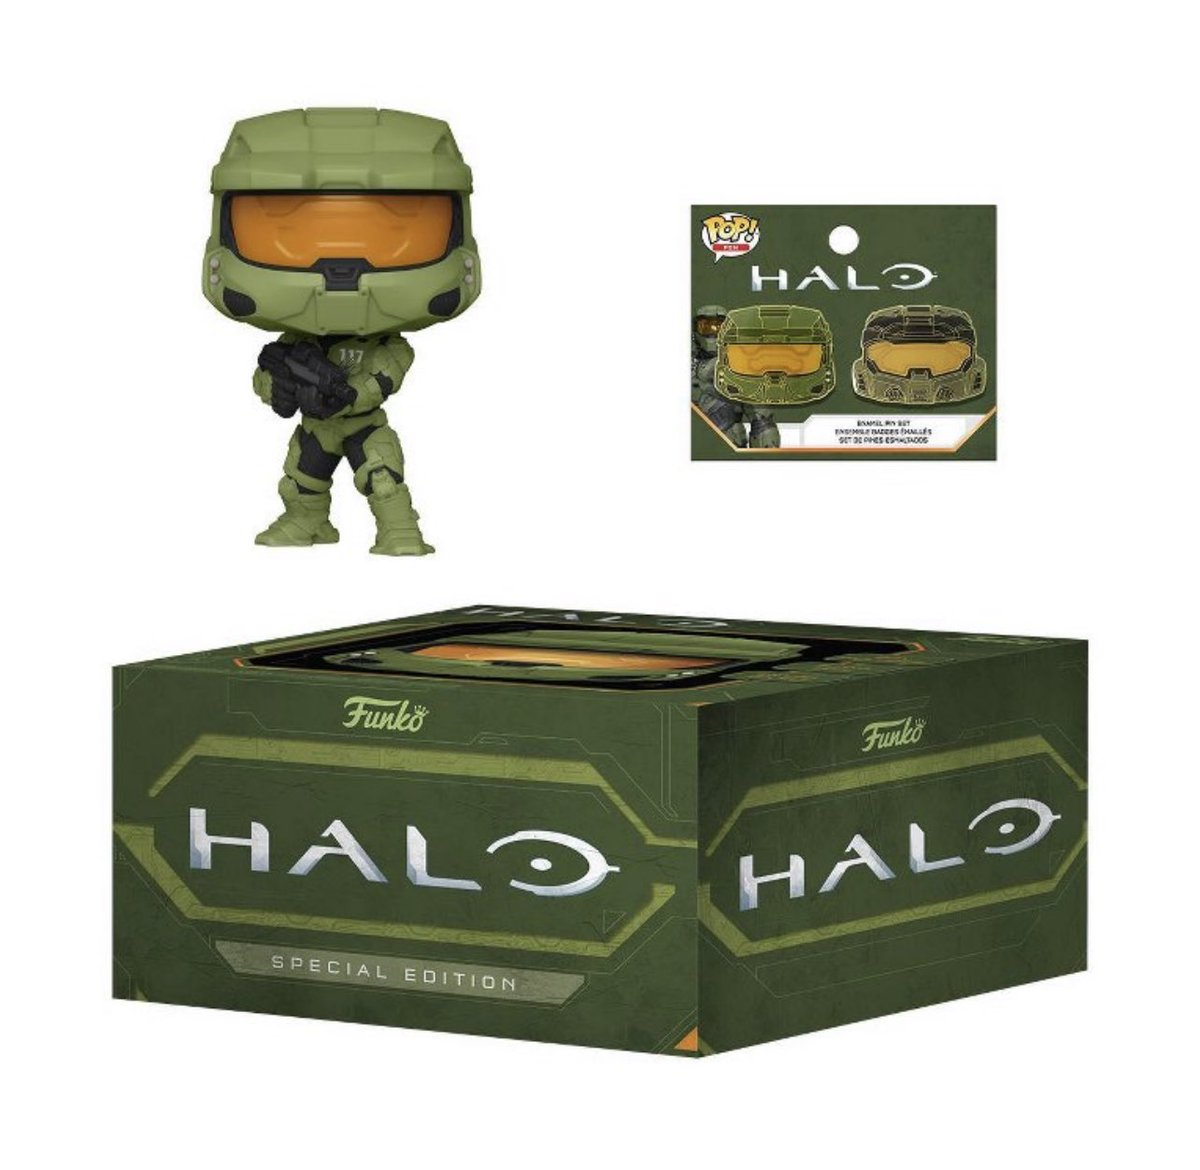 Available Now: Halo Special Edition Box! Comes with the common Master Chief and a pin set. .